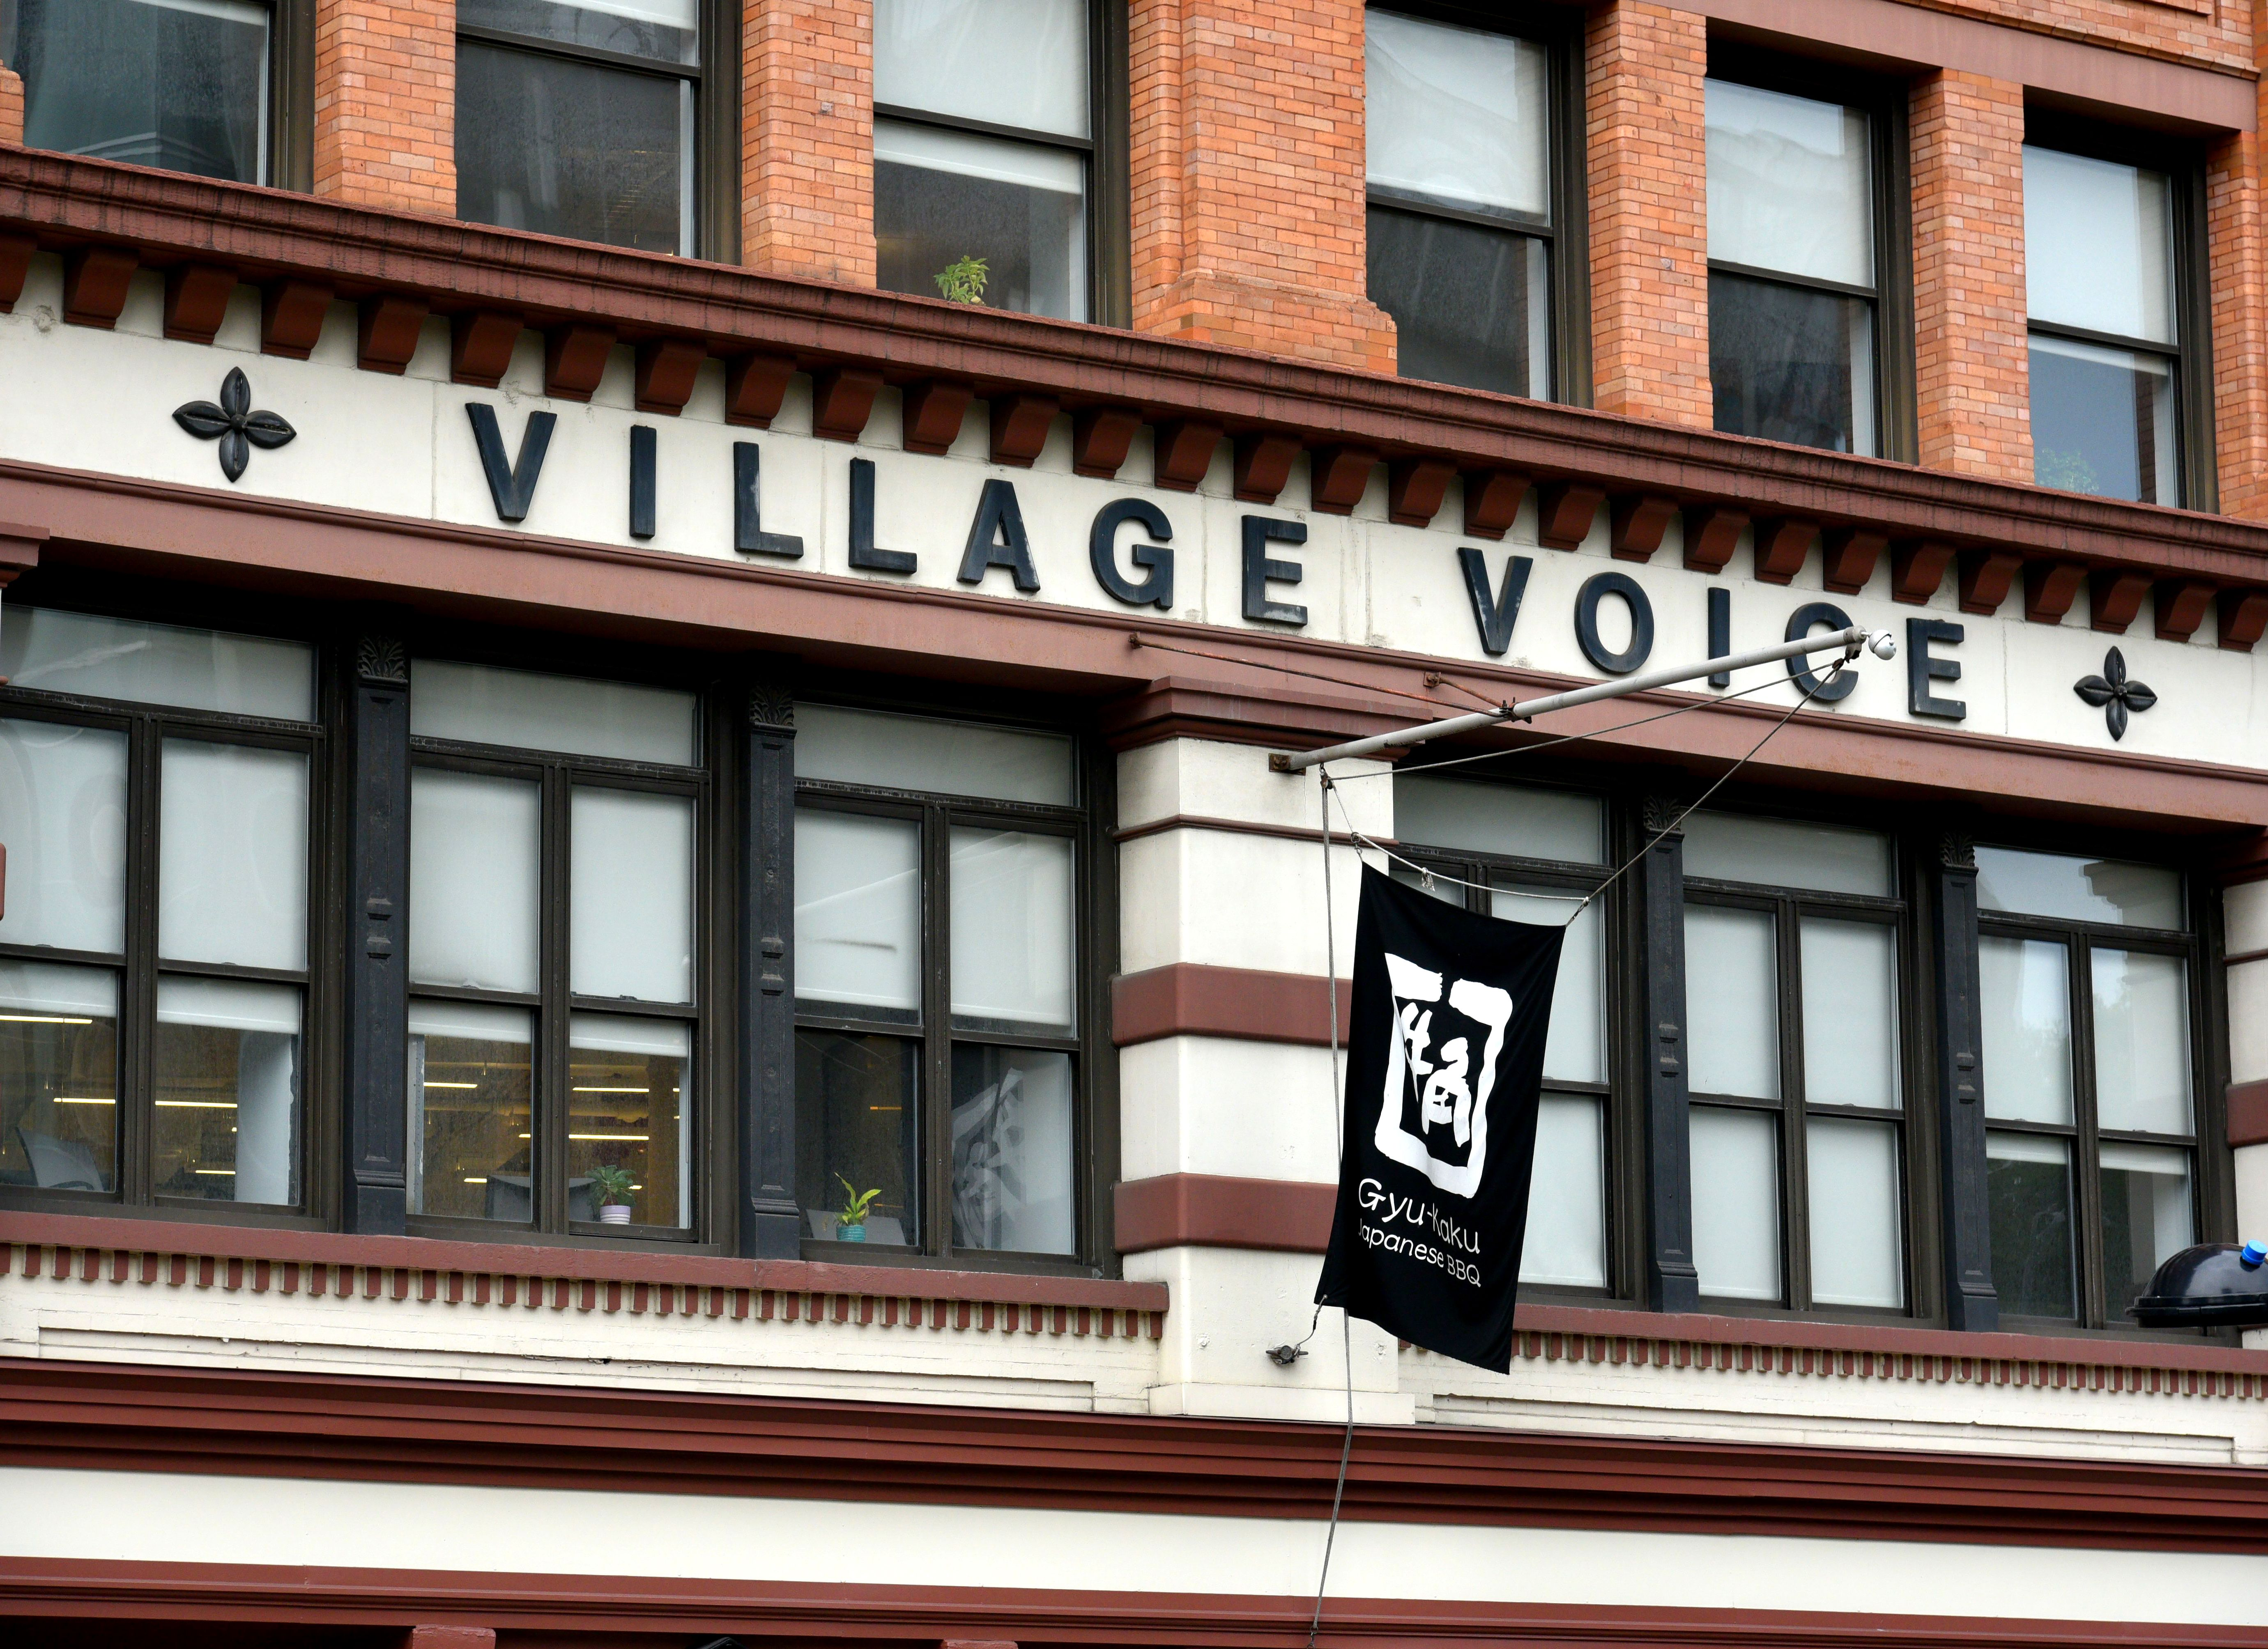 The Village Voice located at 36 Cooper Square in New York.The Village Voice ceases operations, New York, USA - 31 Aug 2018The Village Voice, which was founded in 1955 and left an indelible mark on New York's cultural and political landscape for decades, has finally faced up to its daunting business reality and opted to cease editorial operations.